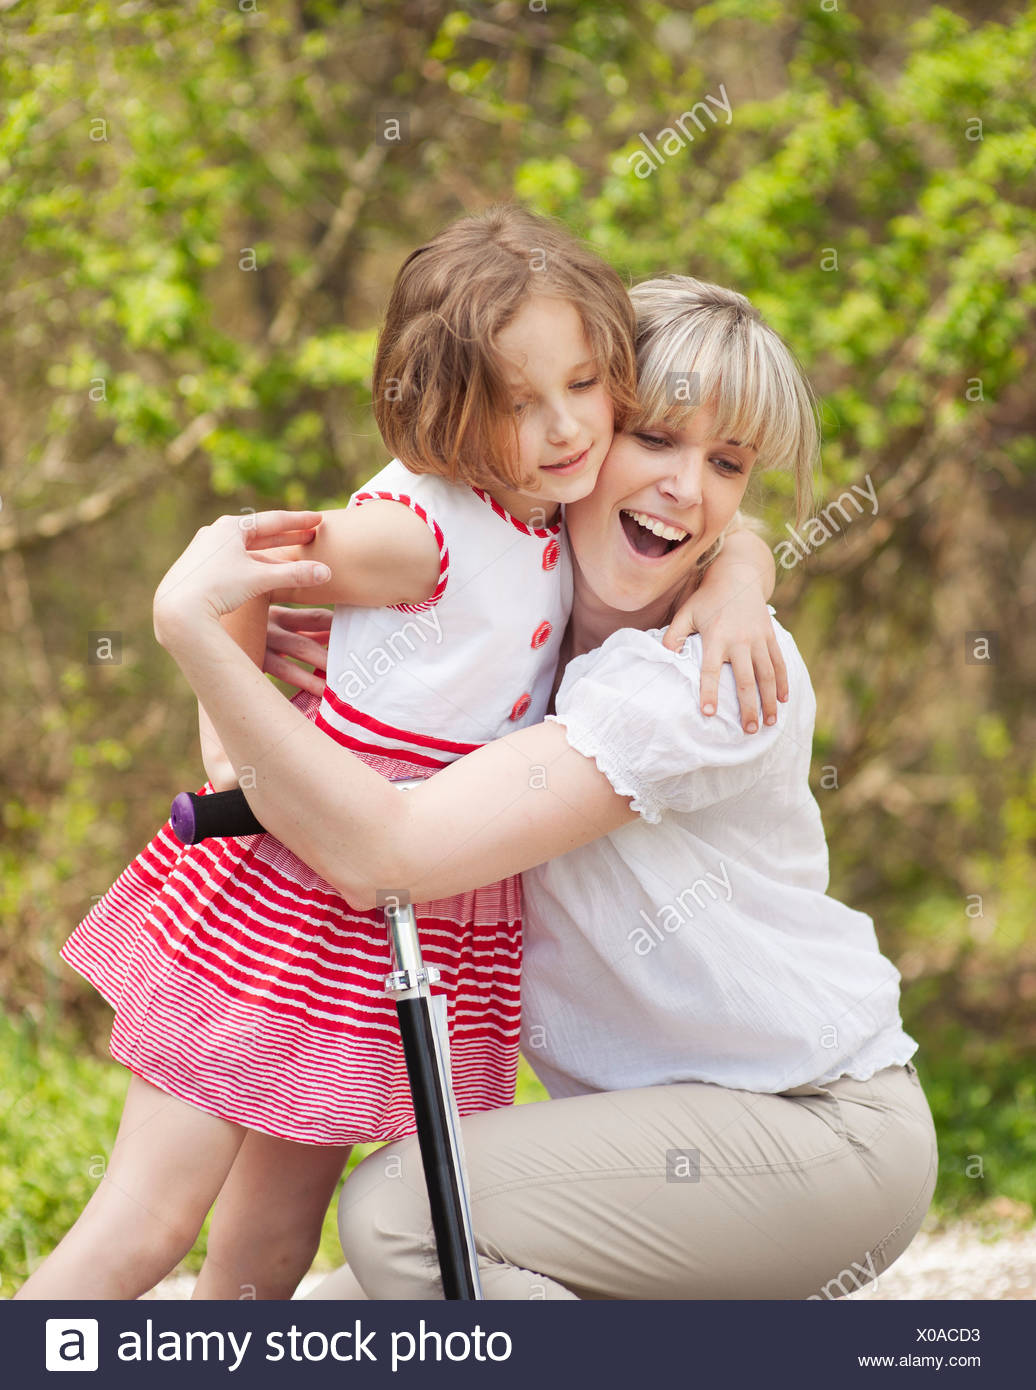 Mother and daughter hug in park with scooter - Stock Image